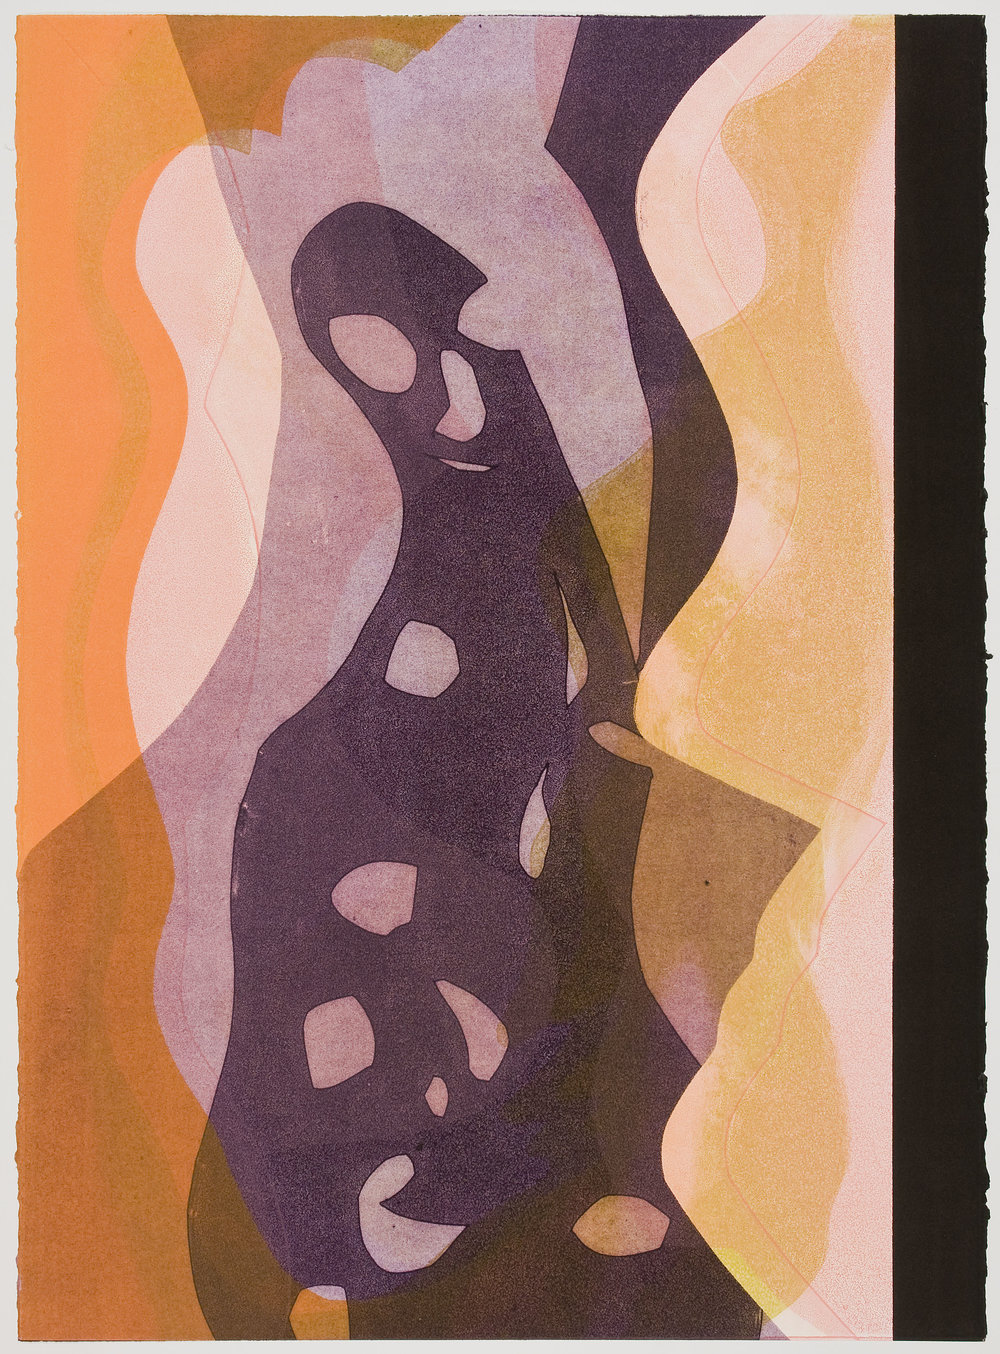 Untitled (XVI) , 2012 Monotype Image & Paper: 29 x 21 inches